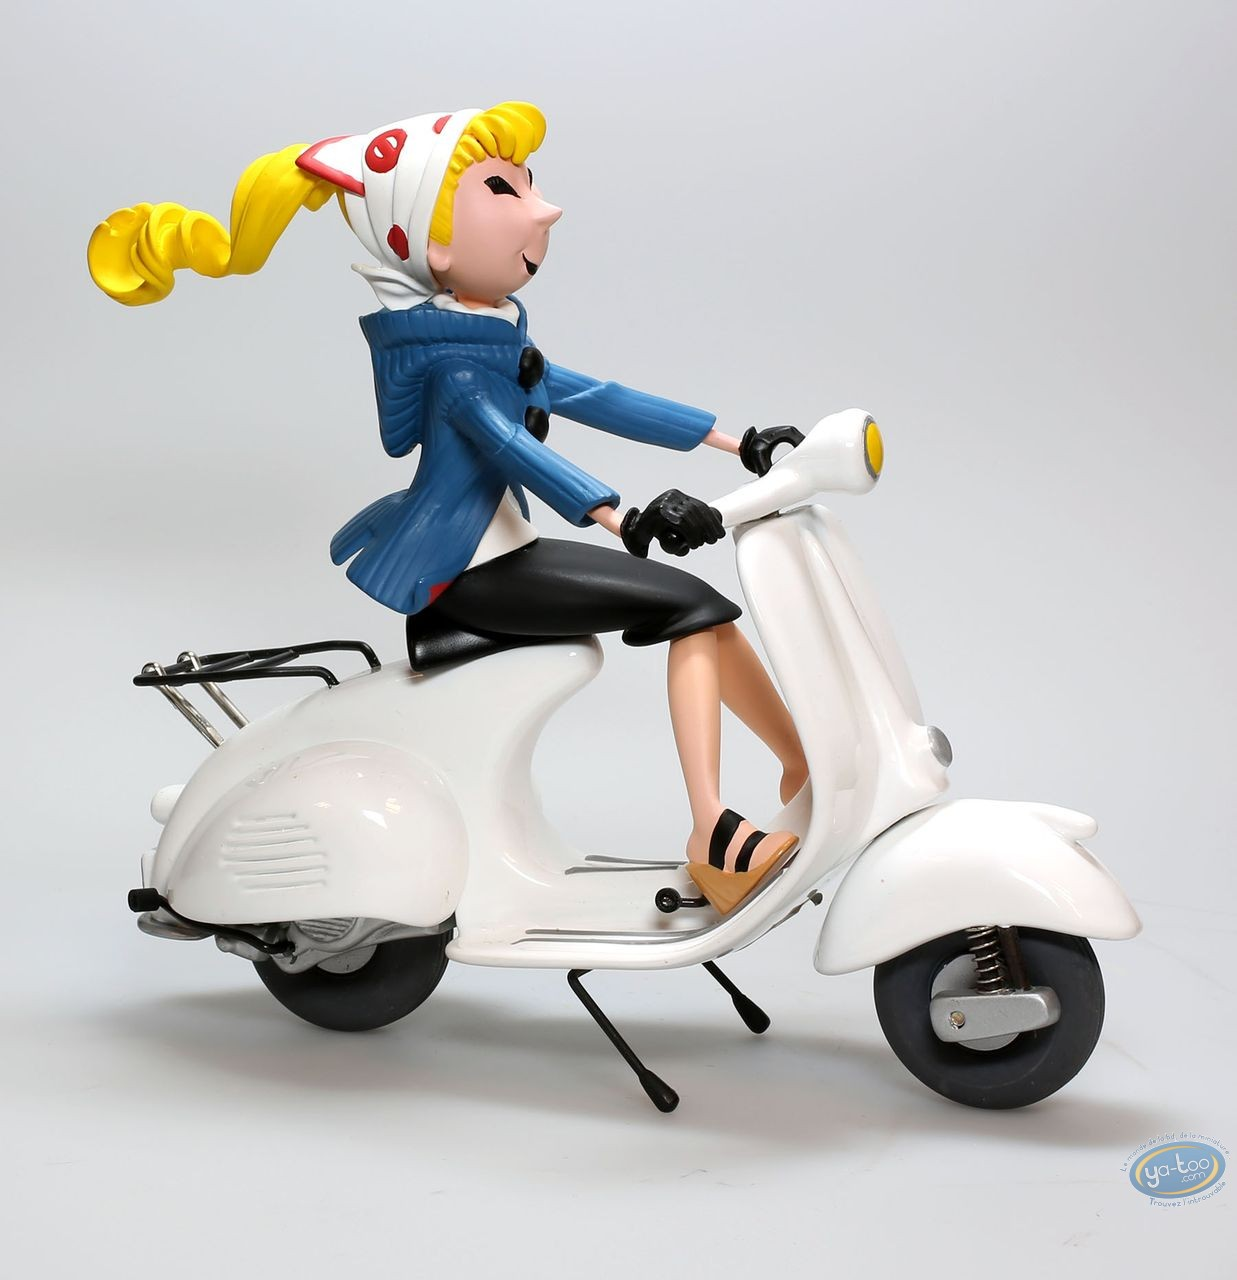 European comic strip vehicle, Spirou and Fantasio : Seccotine with scooter, Michel Aroutcheff